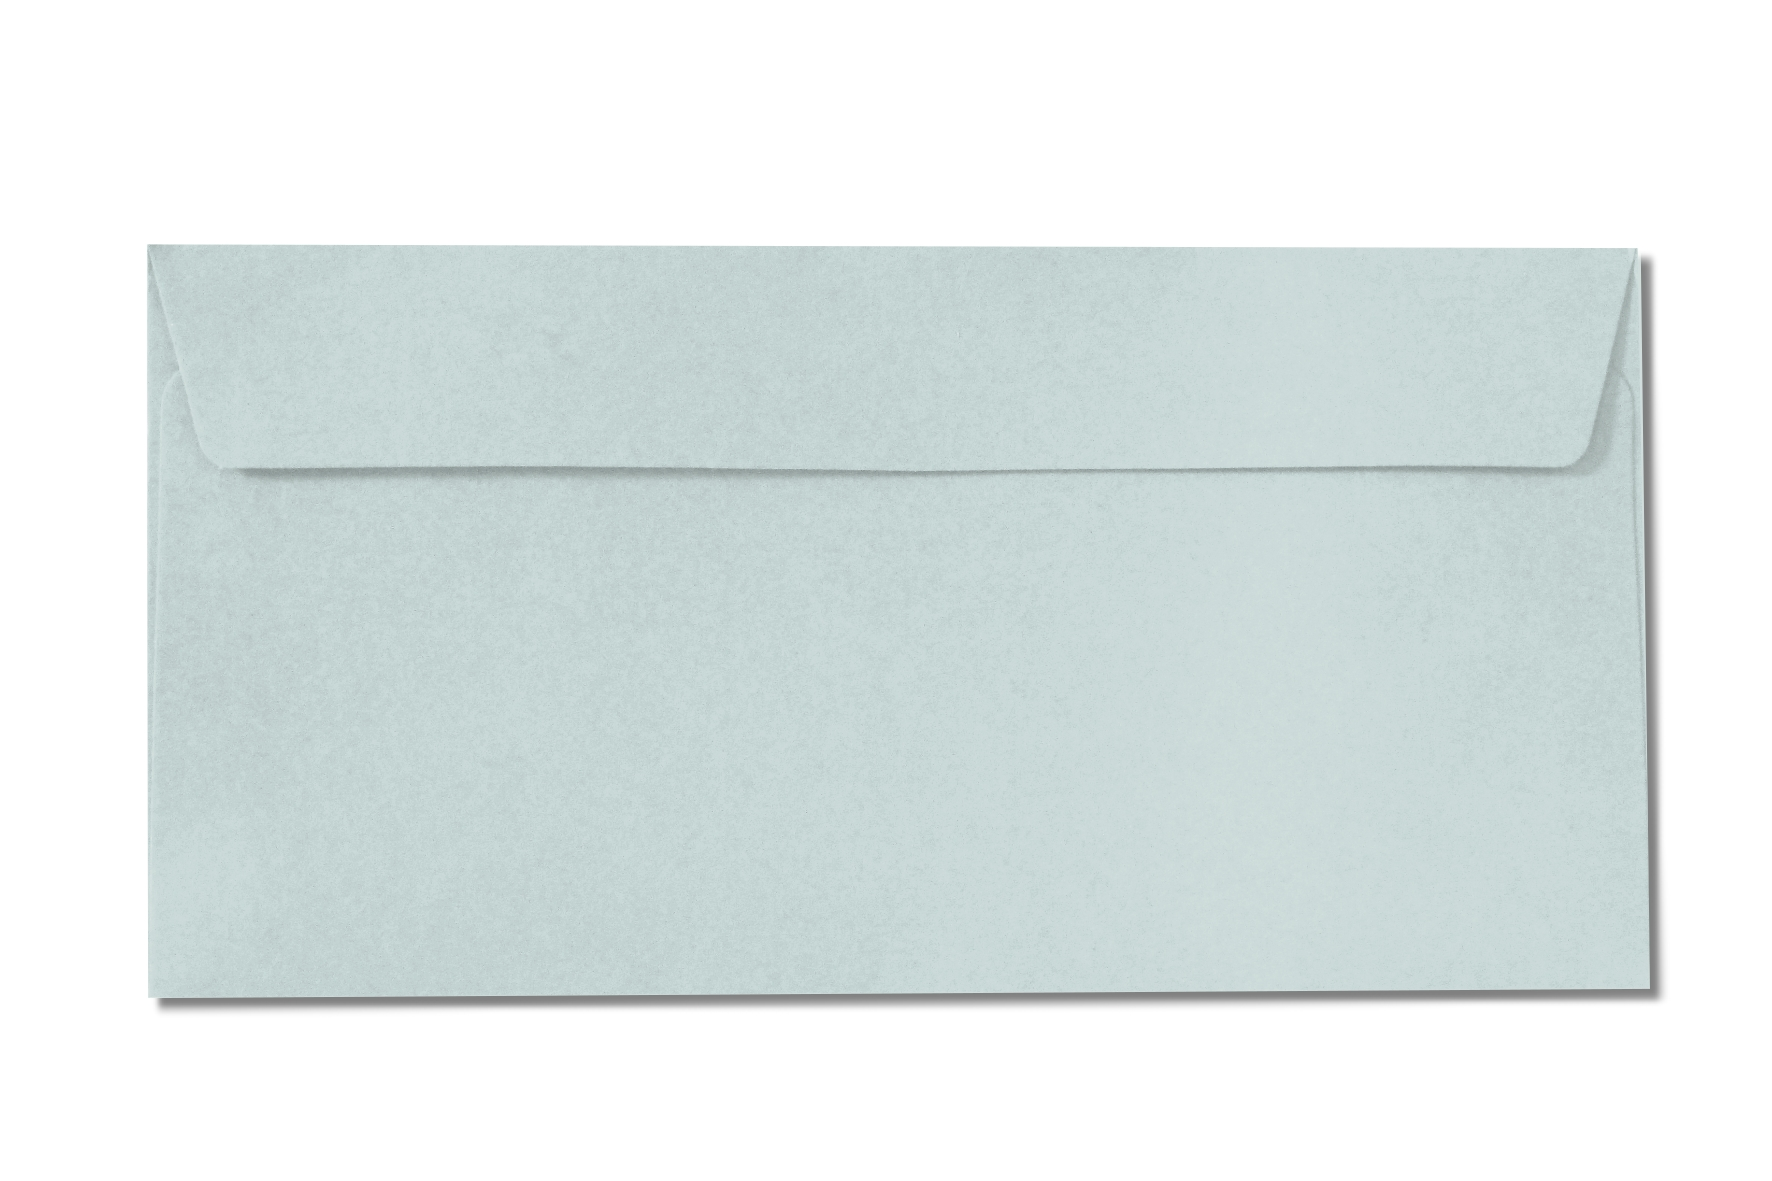 DL pale blue envelopes